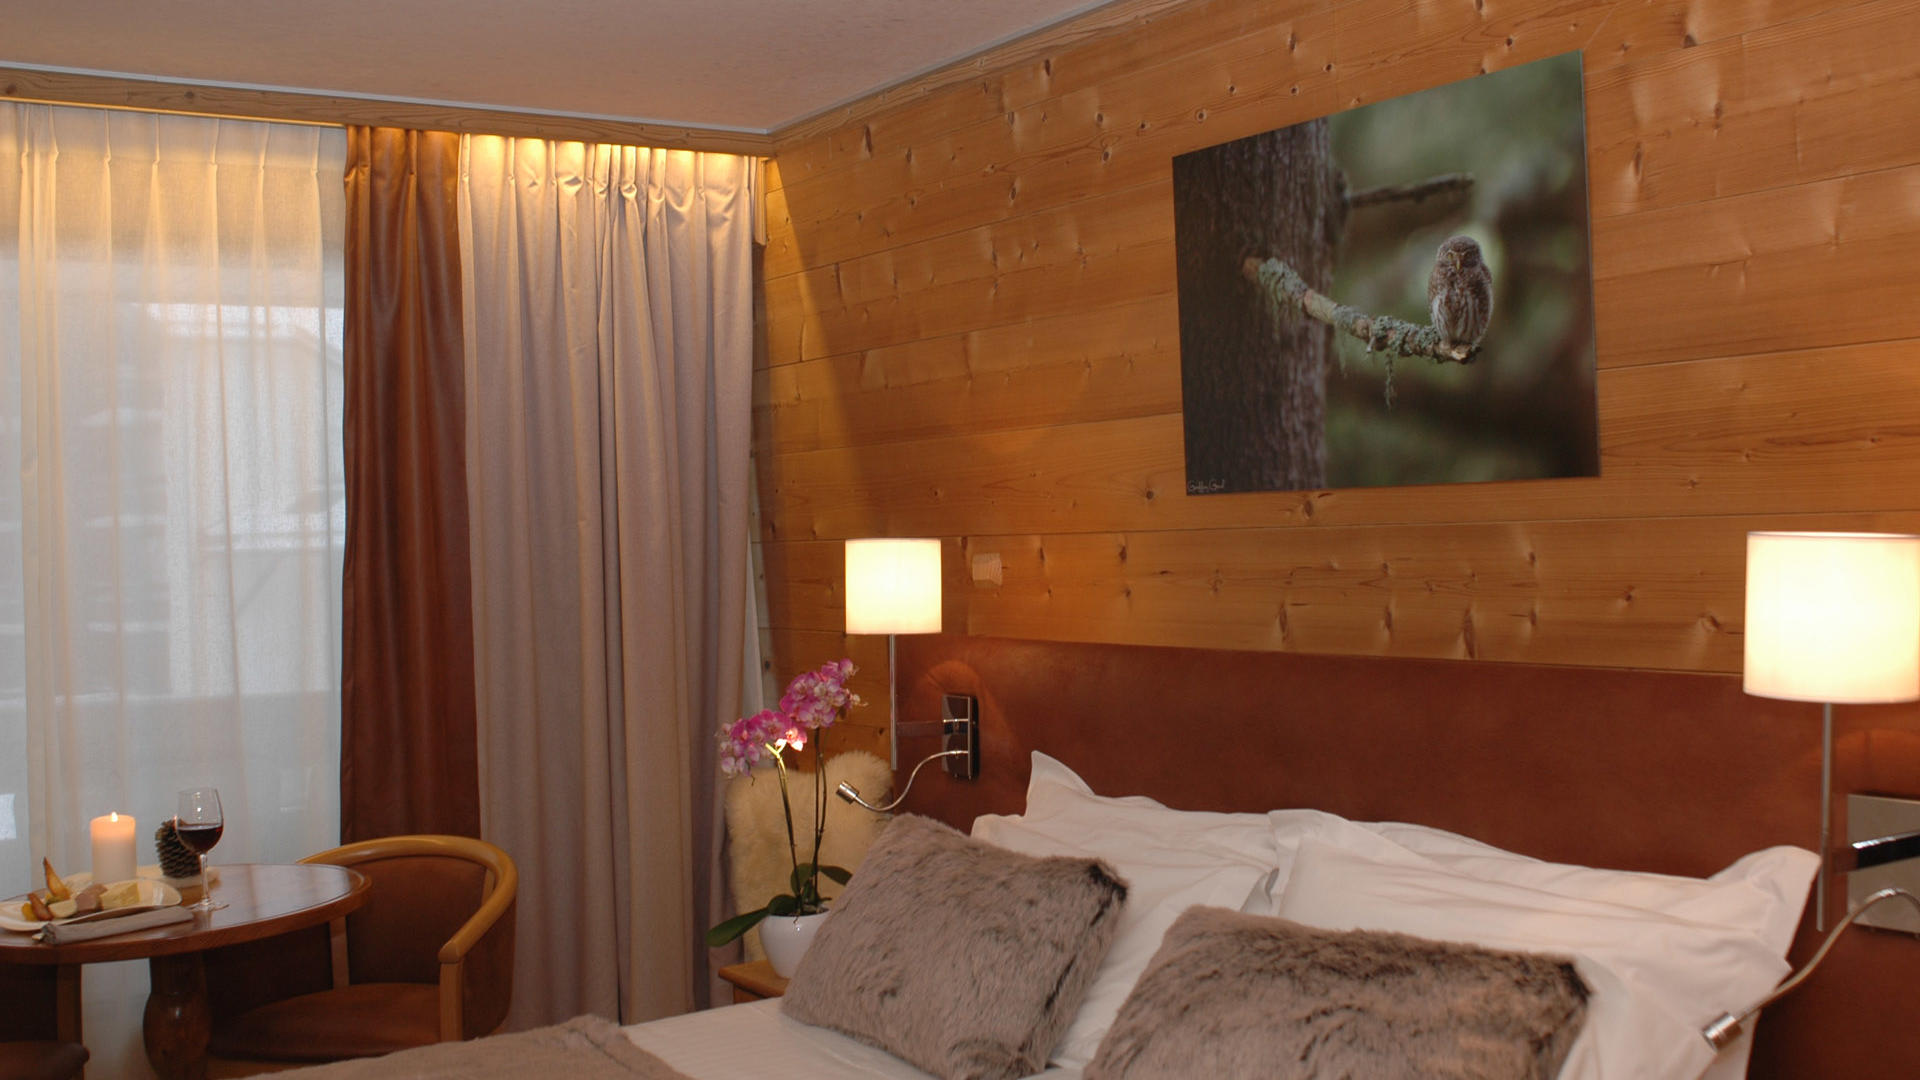 Room at Chalet Hôtel La Chemenaz in Les Contamines-Montjoie